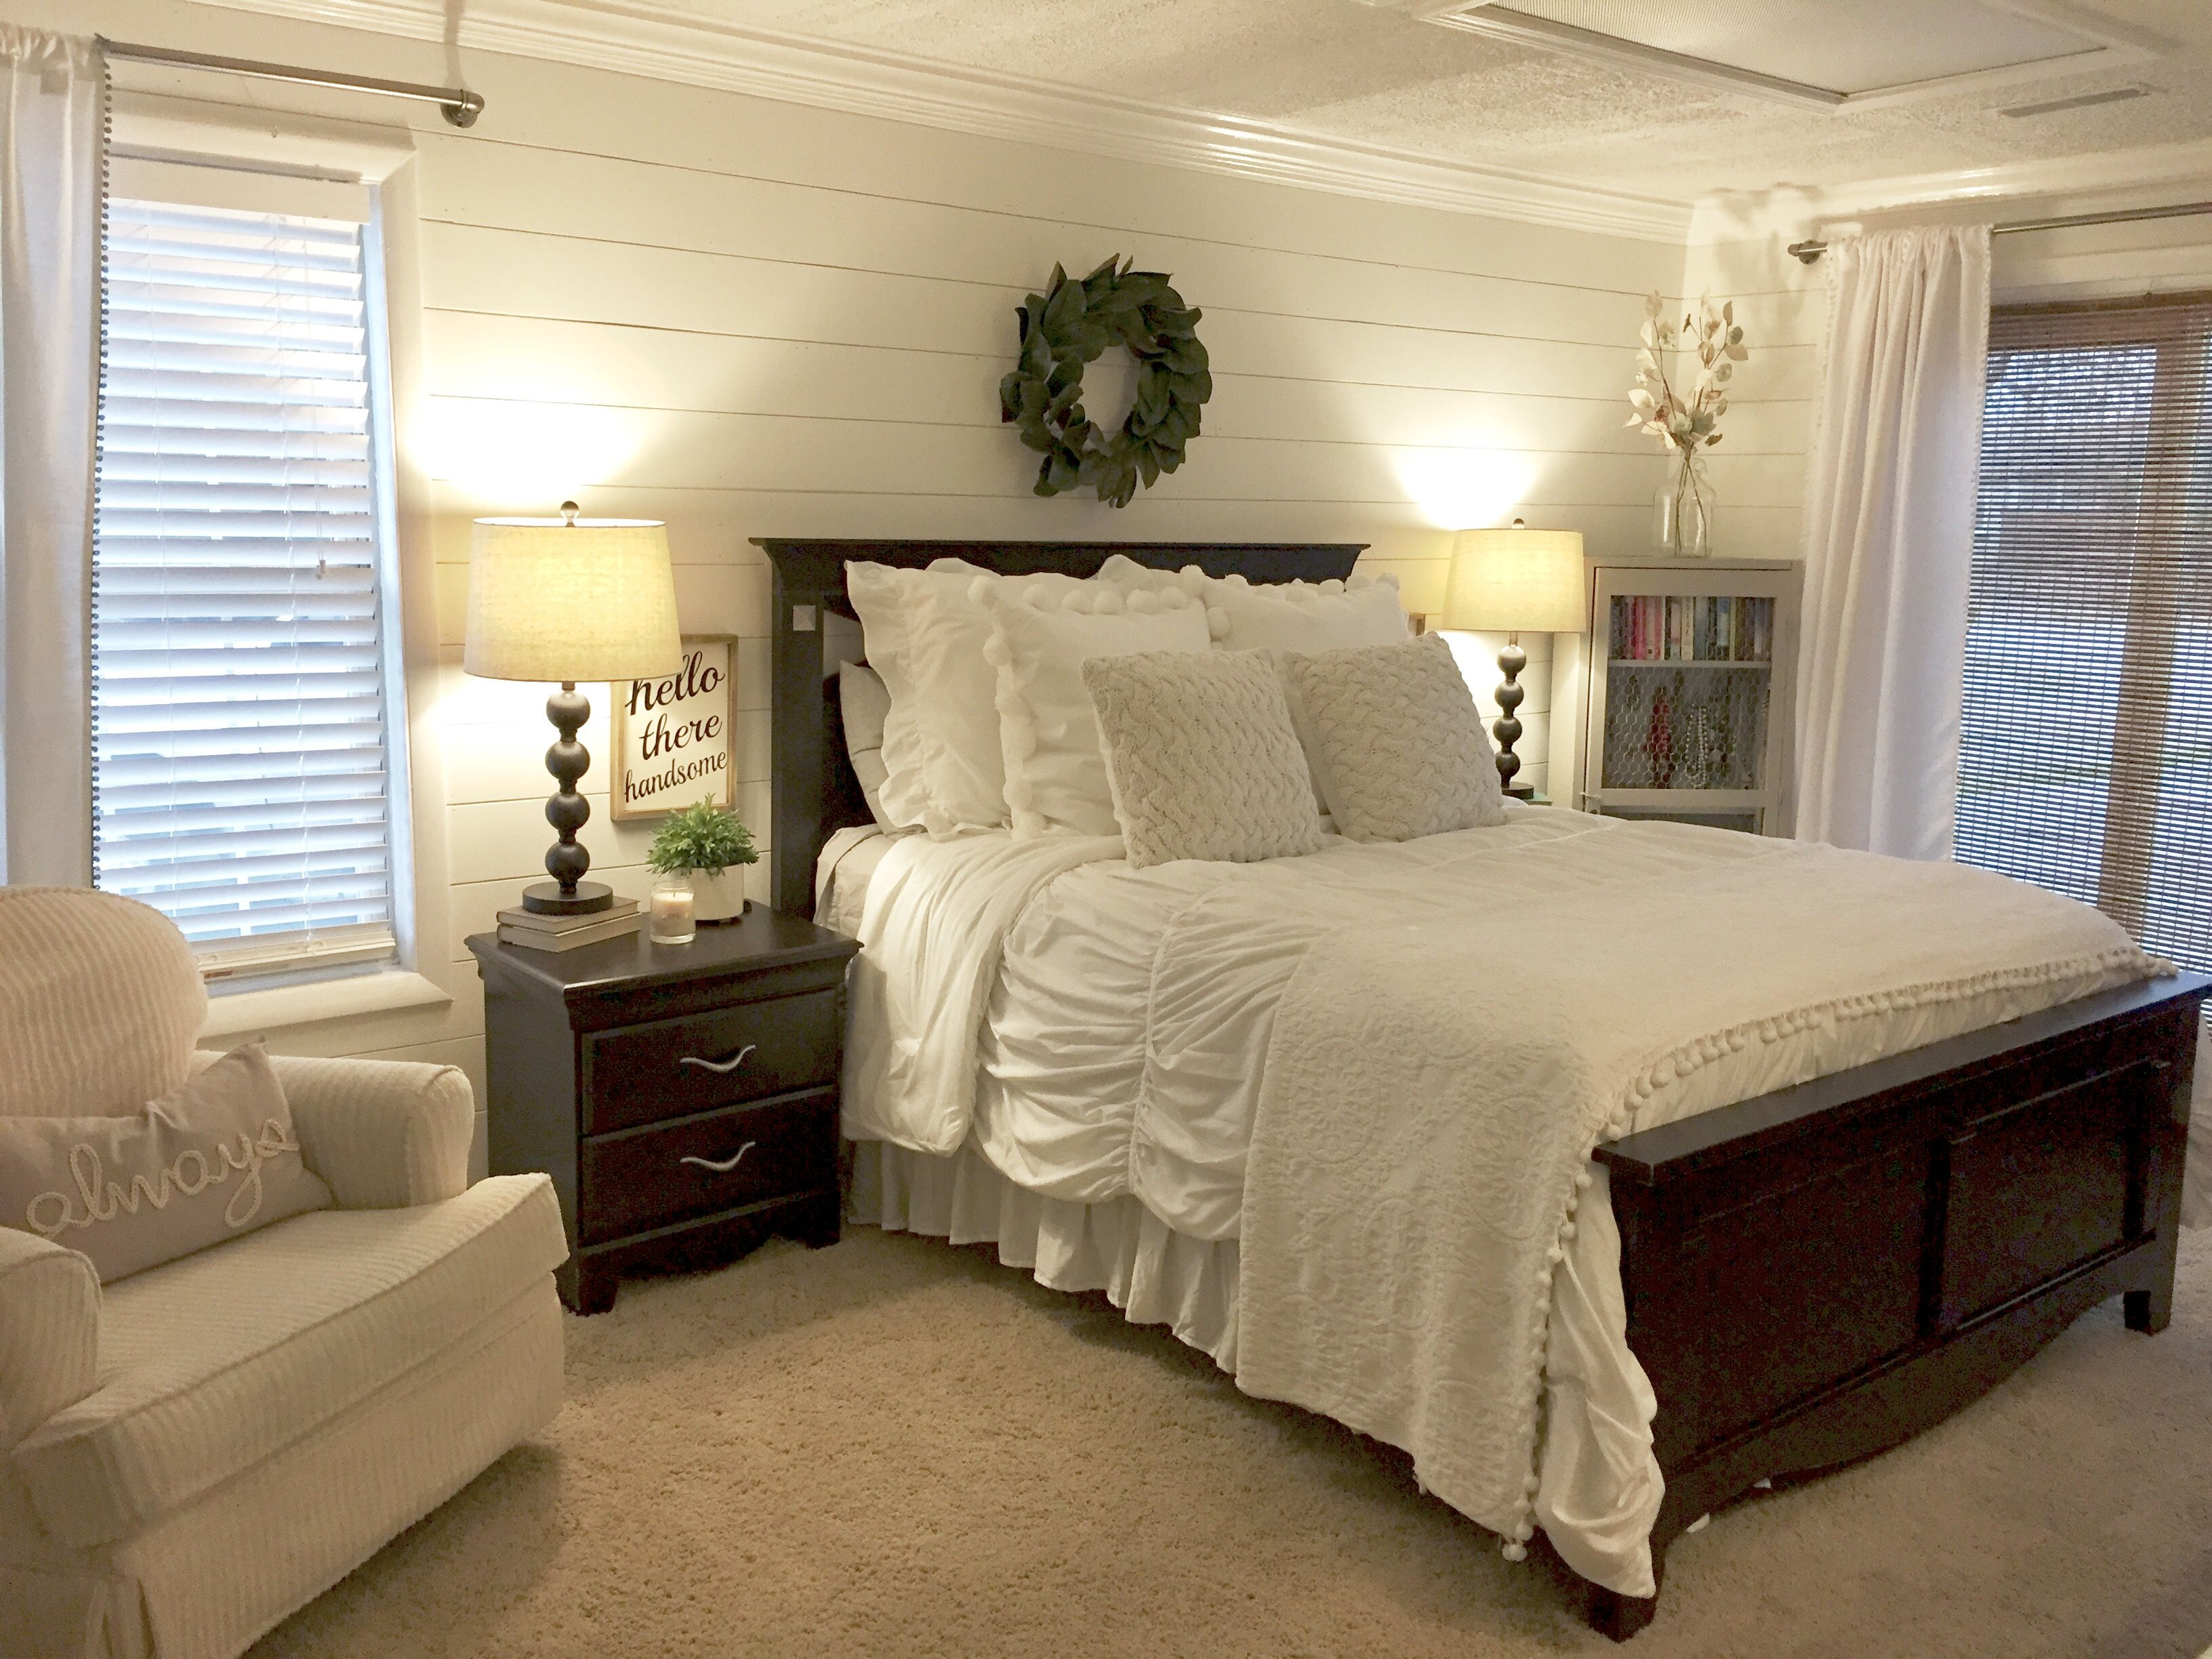 shiplap bedroom walls with farmhouse charm magnolia wreath and alabaster white paint